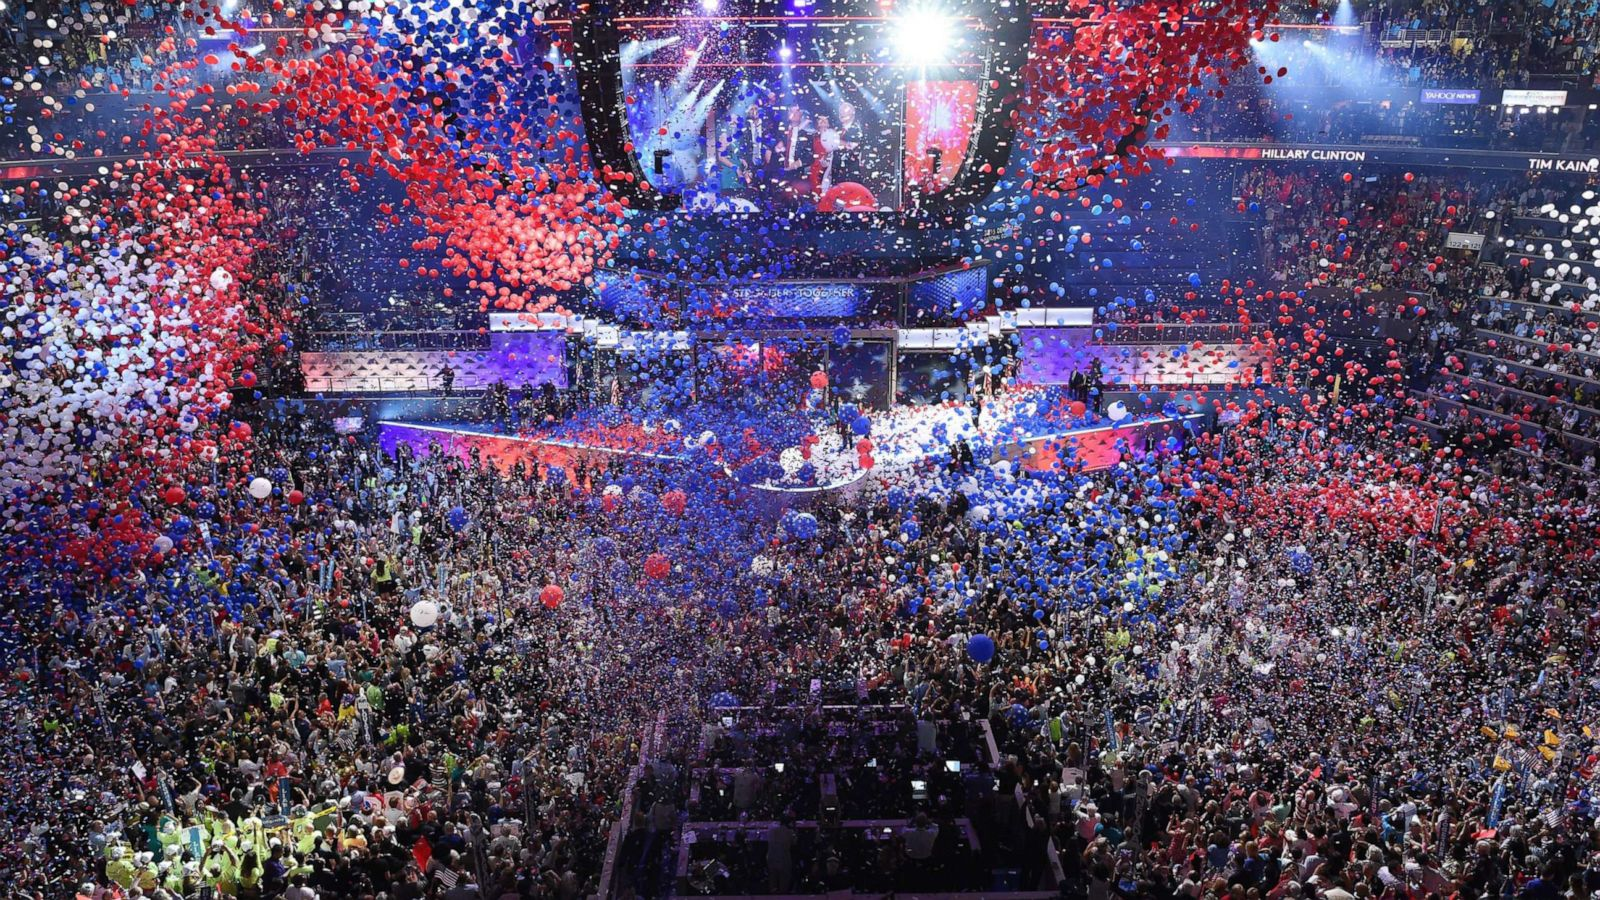 The Democratic National Convention kicks off tomorrow in Milwaukee